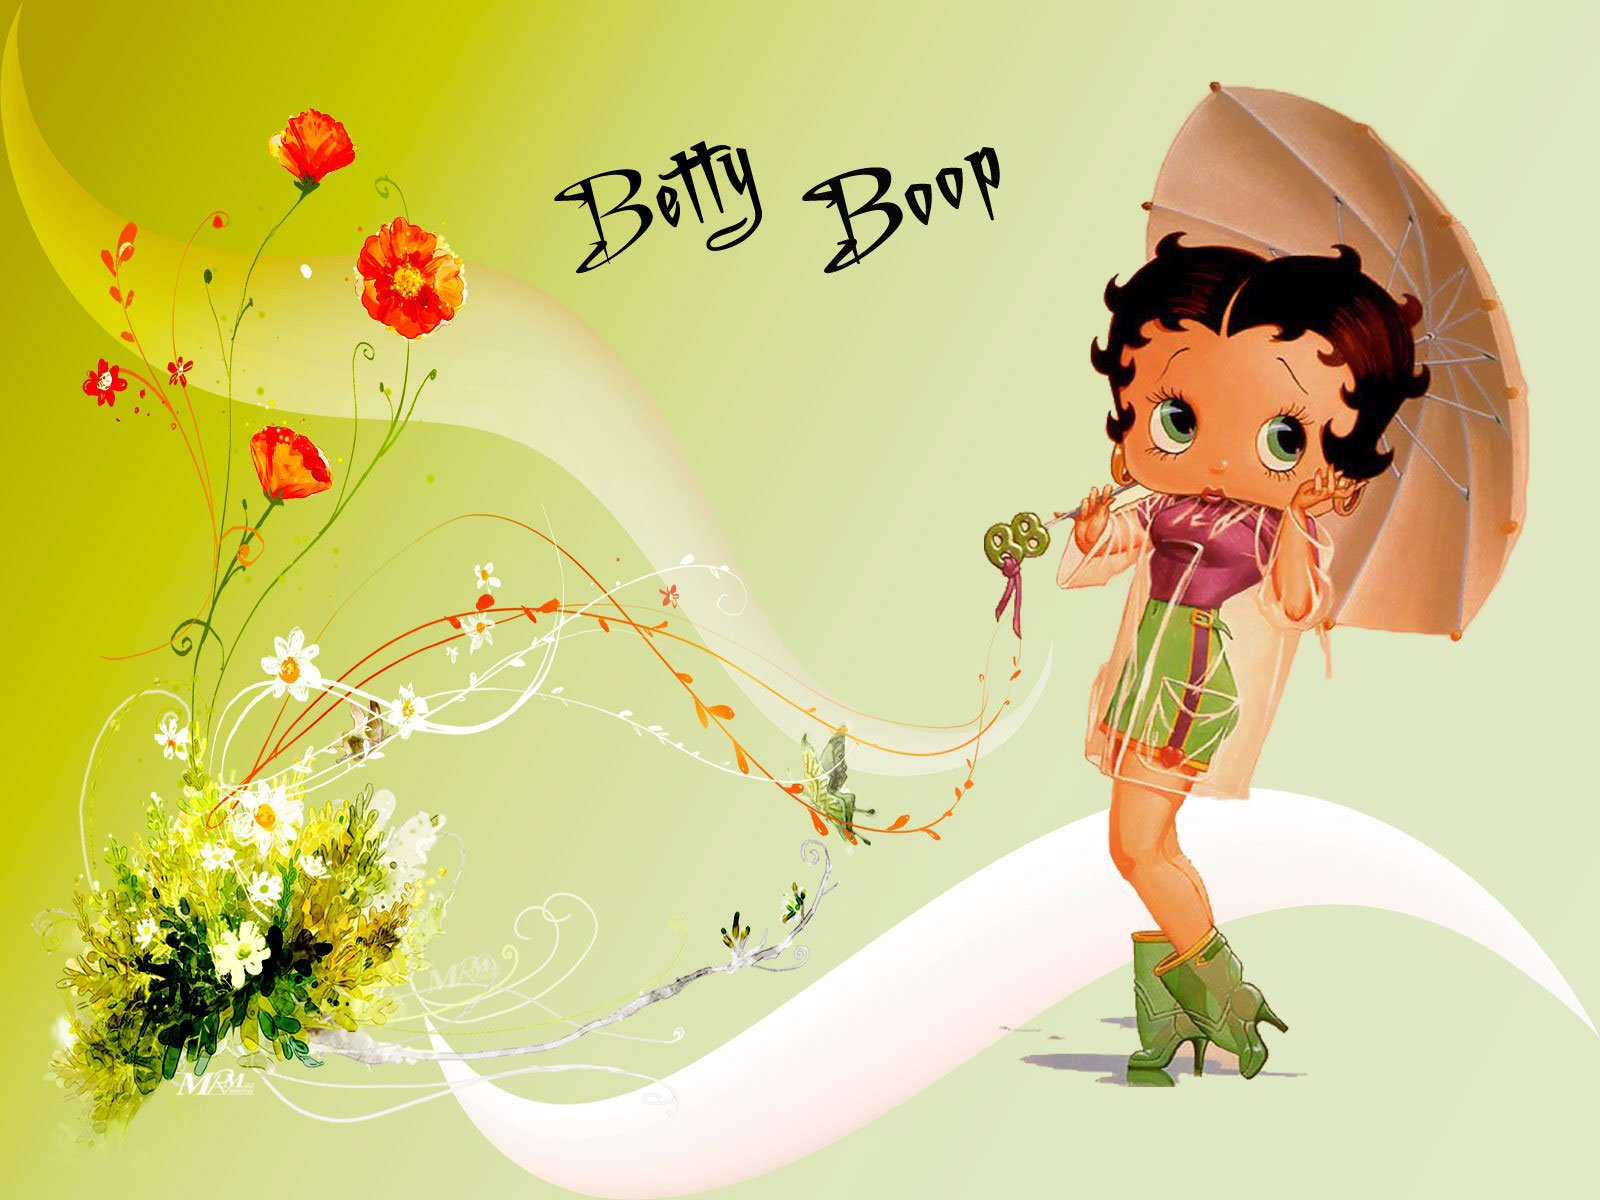 475128-Cartoon_Betty_Boop